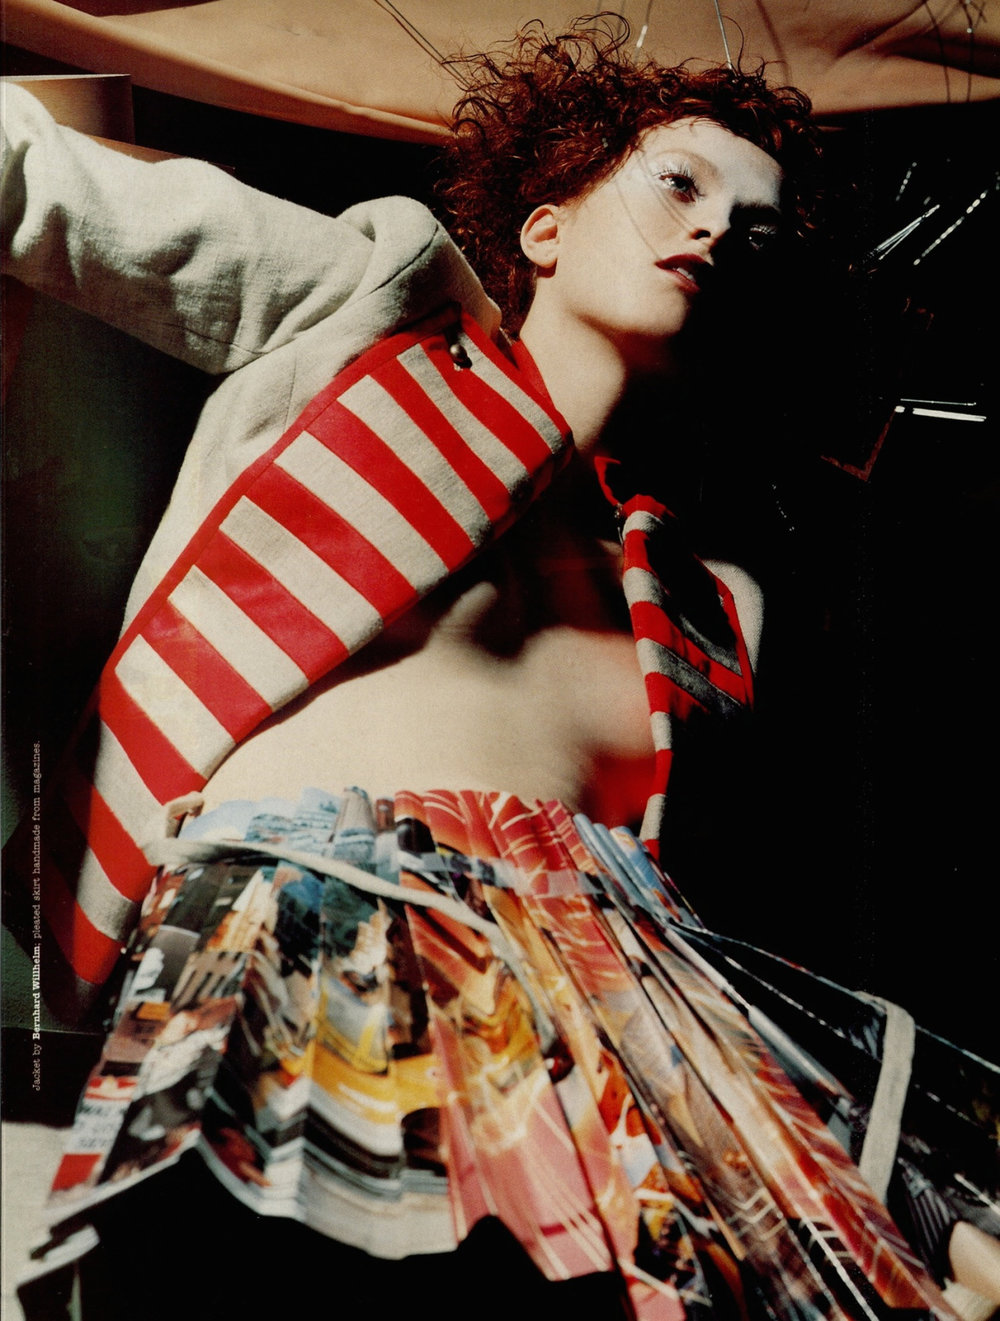 Dazed and Confused : 2002 : Photographer : Yelena Yemchuk